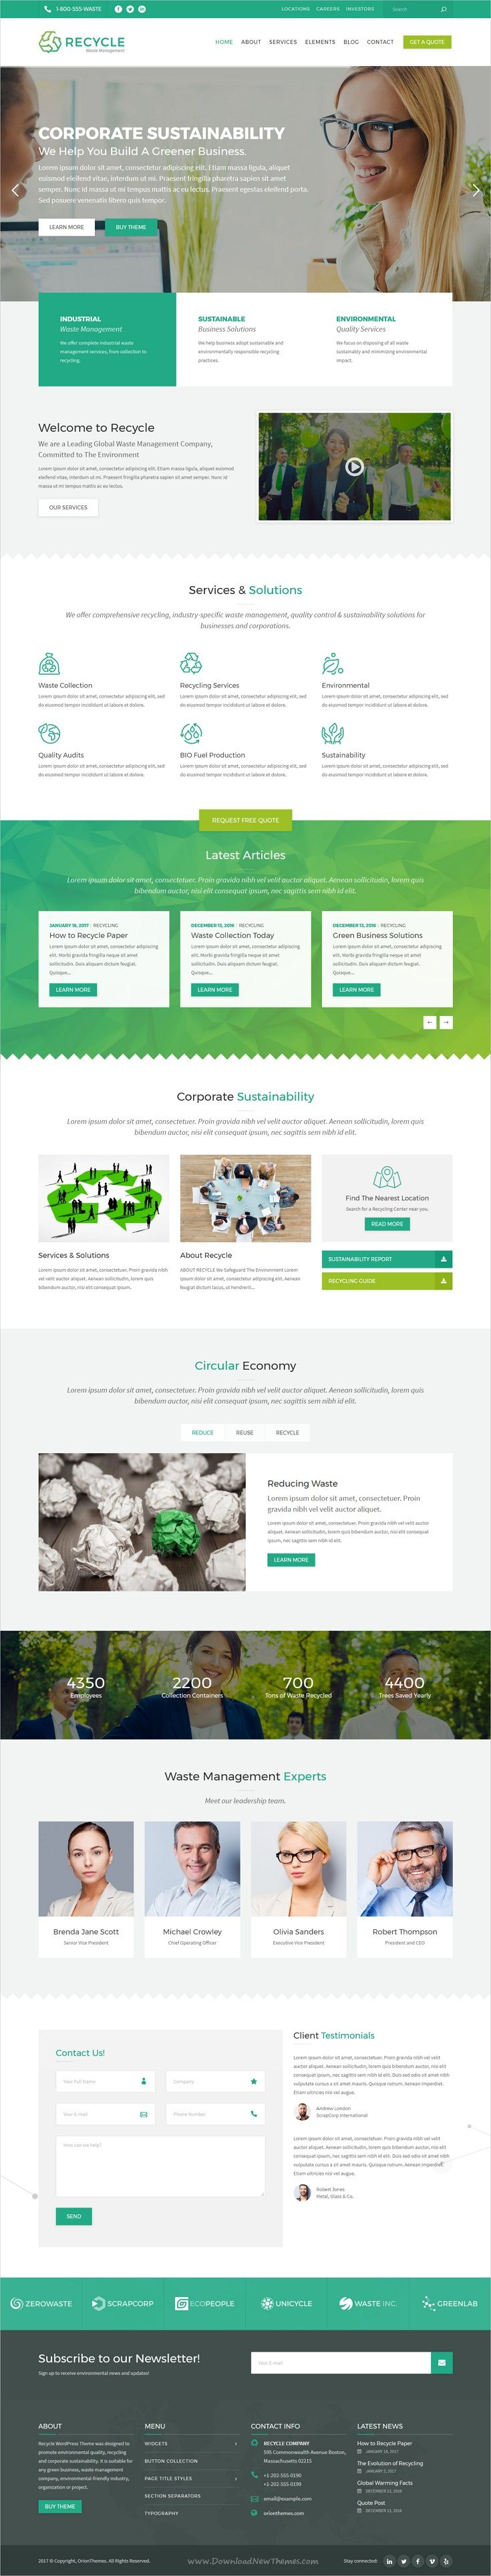 This green website design looks pretty fresh. It's nice that they used a few hues of green. Discover more website design examples at www.dotcomglobalmedia.com